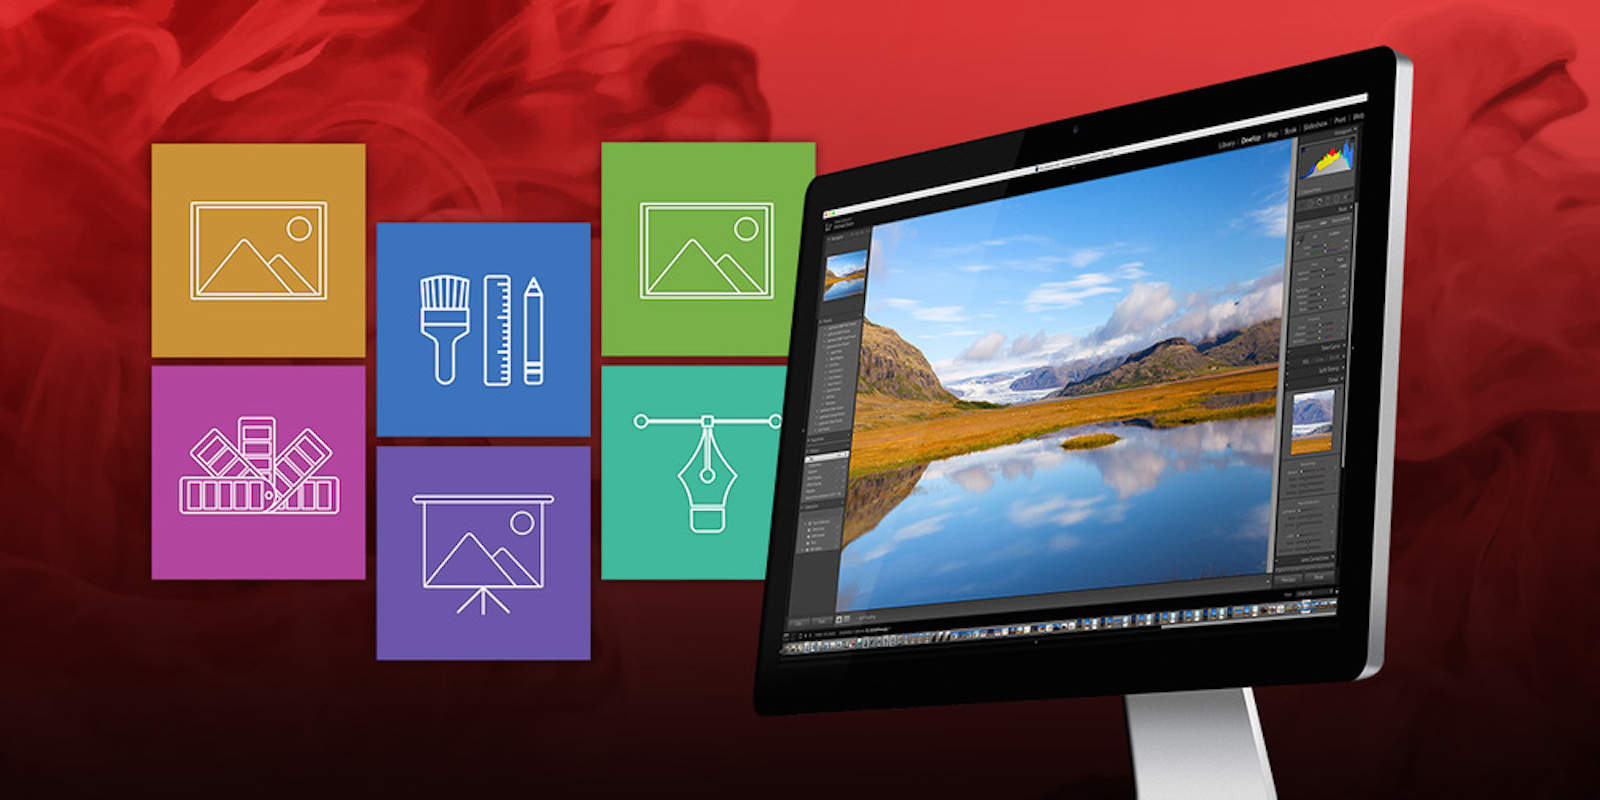 Get a year of access to Adobe's photo products, and comprehensive lessons in using them.